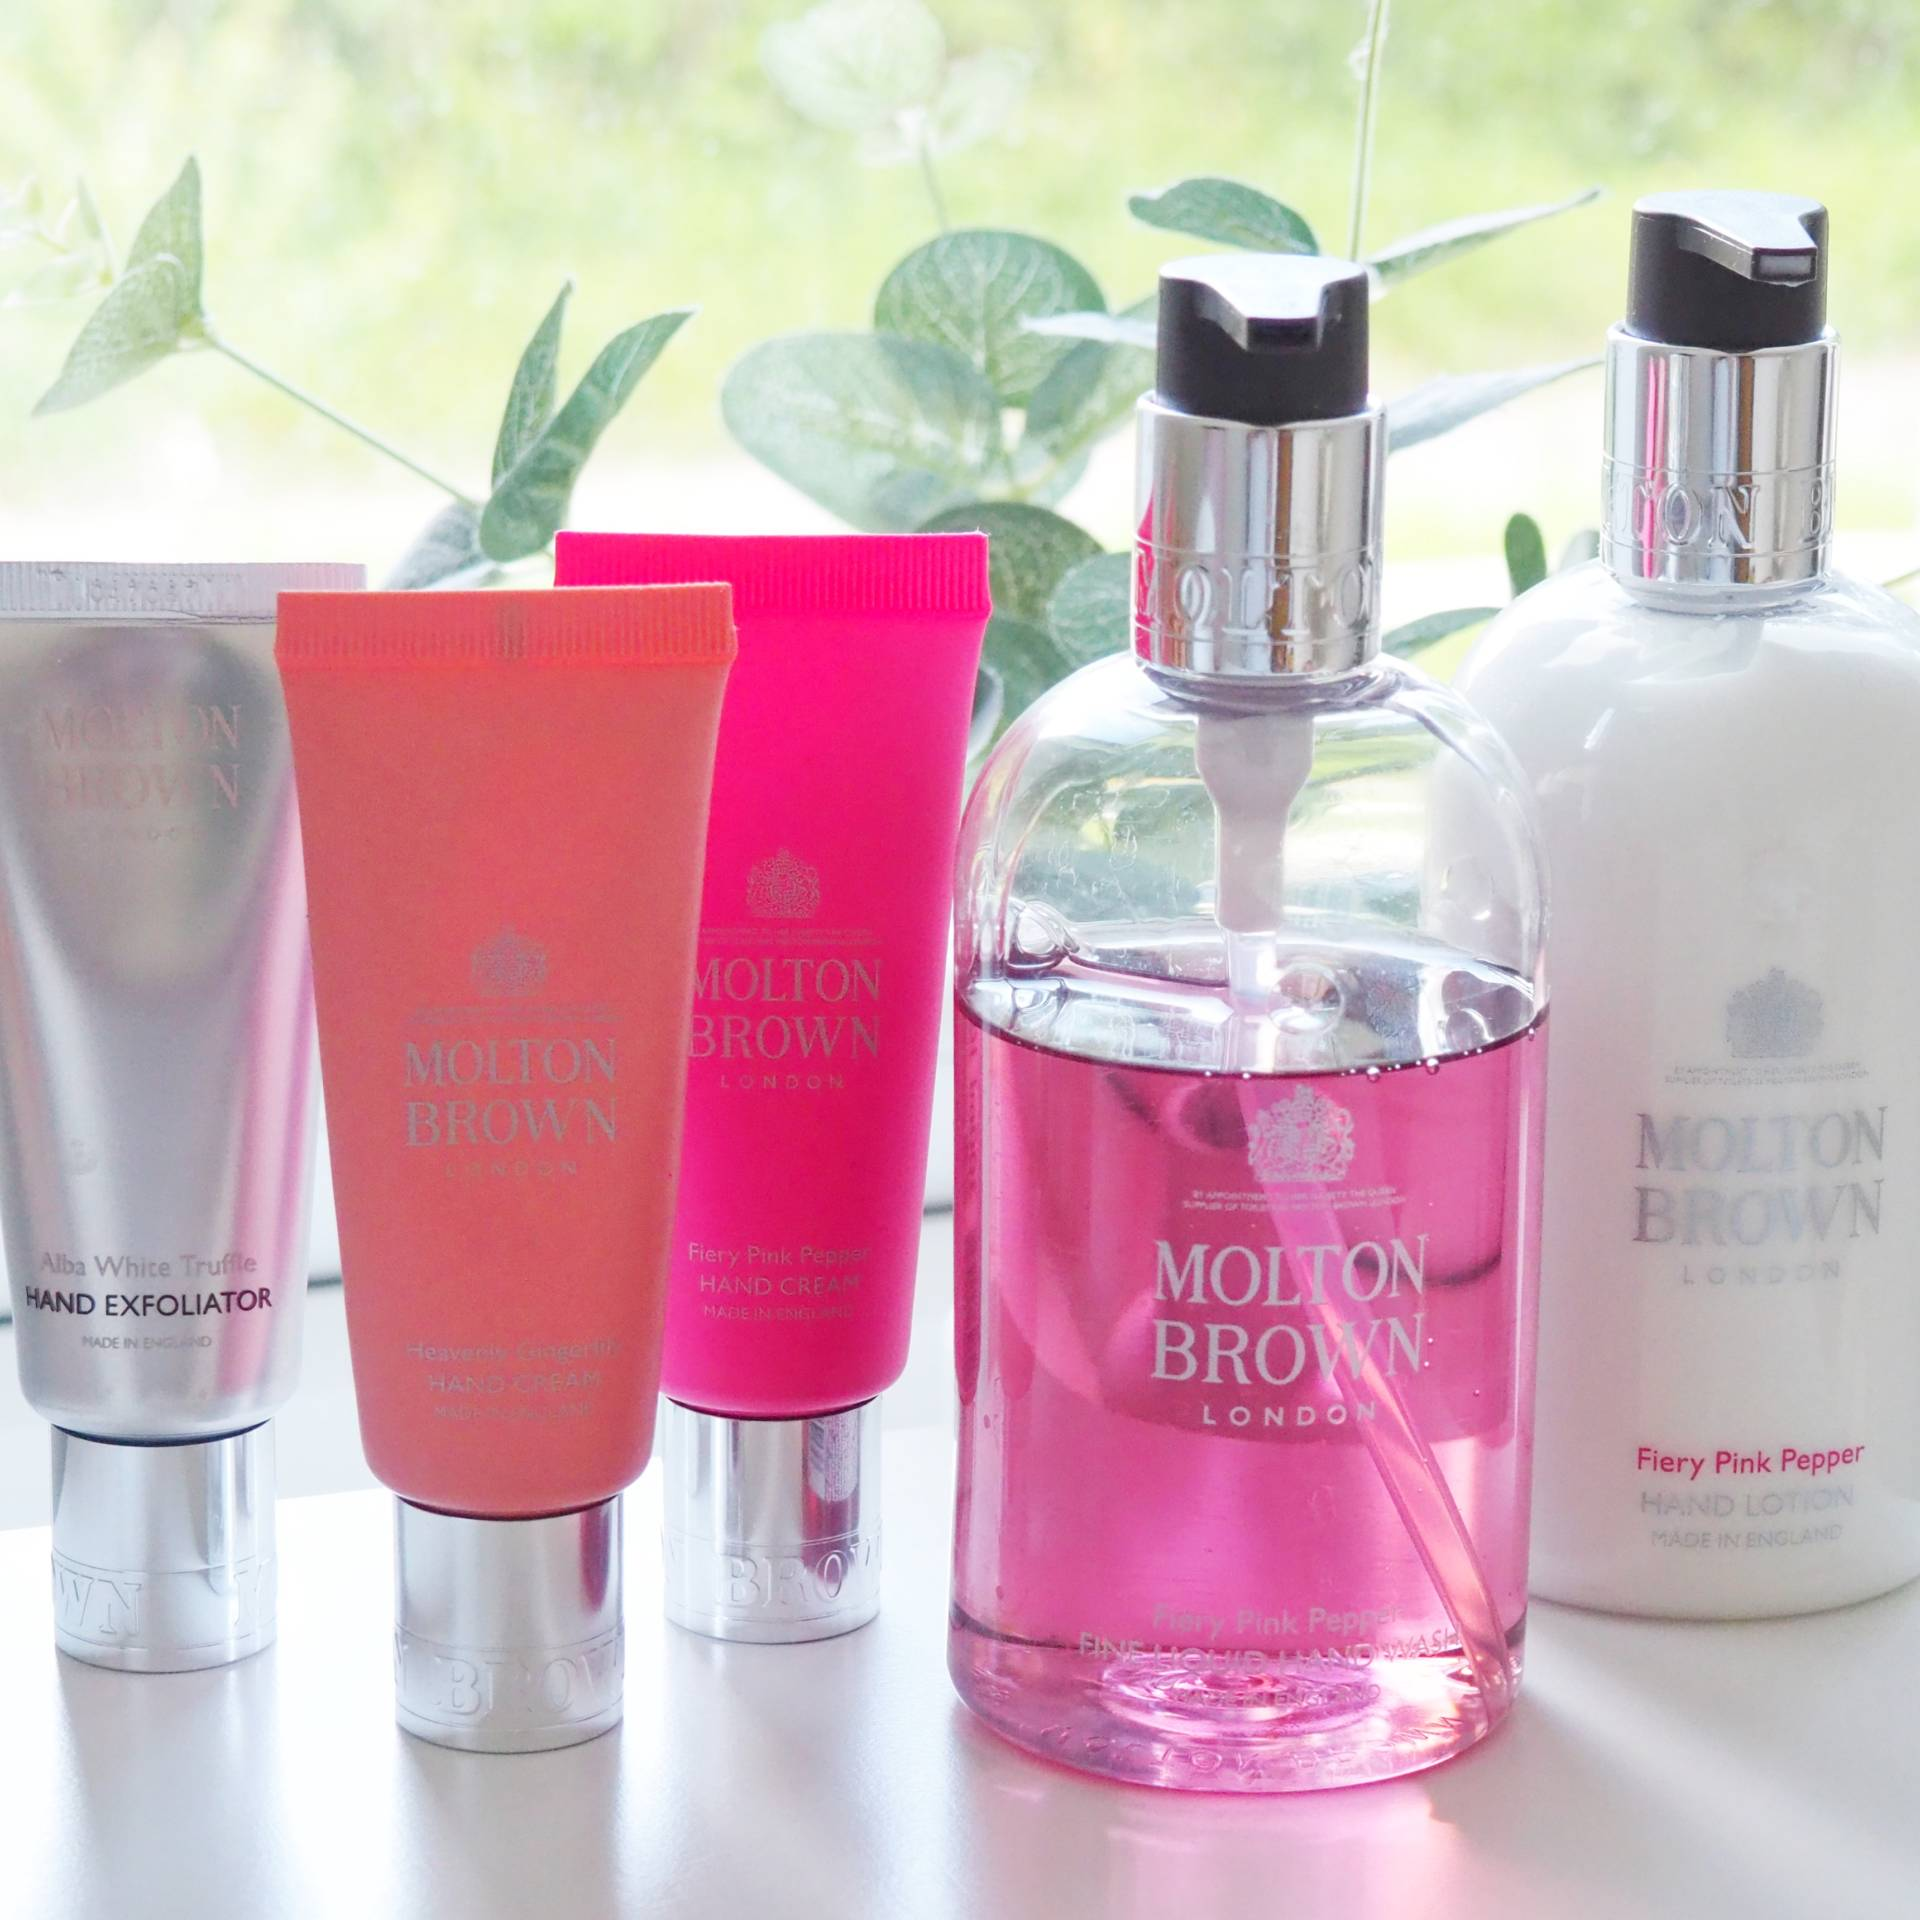 Molton Brown Fiery Pink Pepper Review